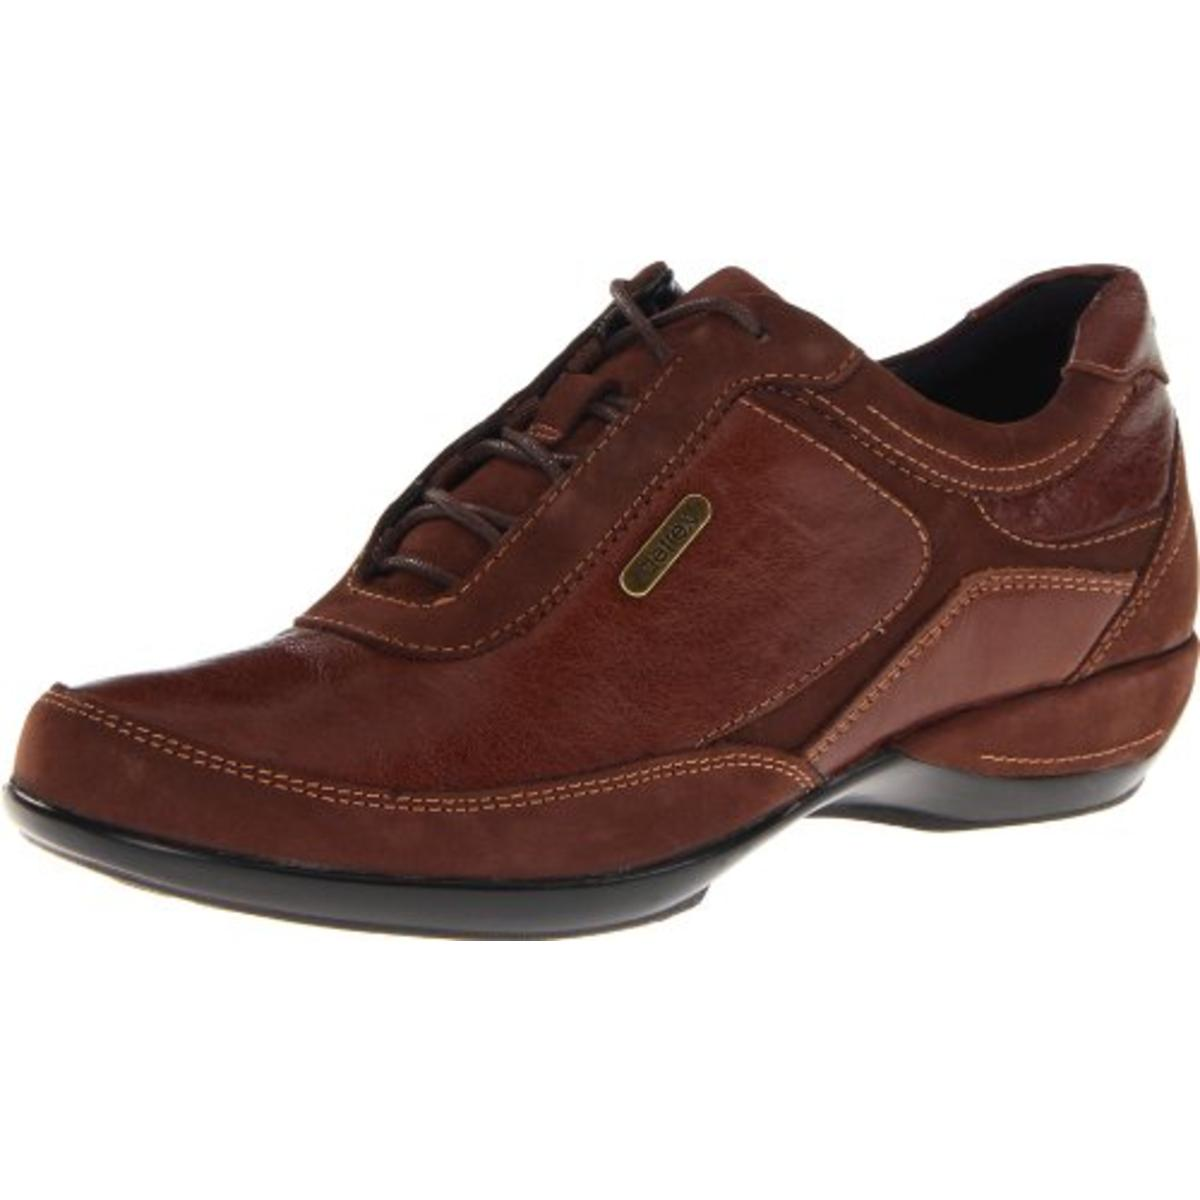 Aetrex Womens Holly Leather Casual Oxfords by Aetrex